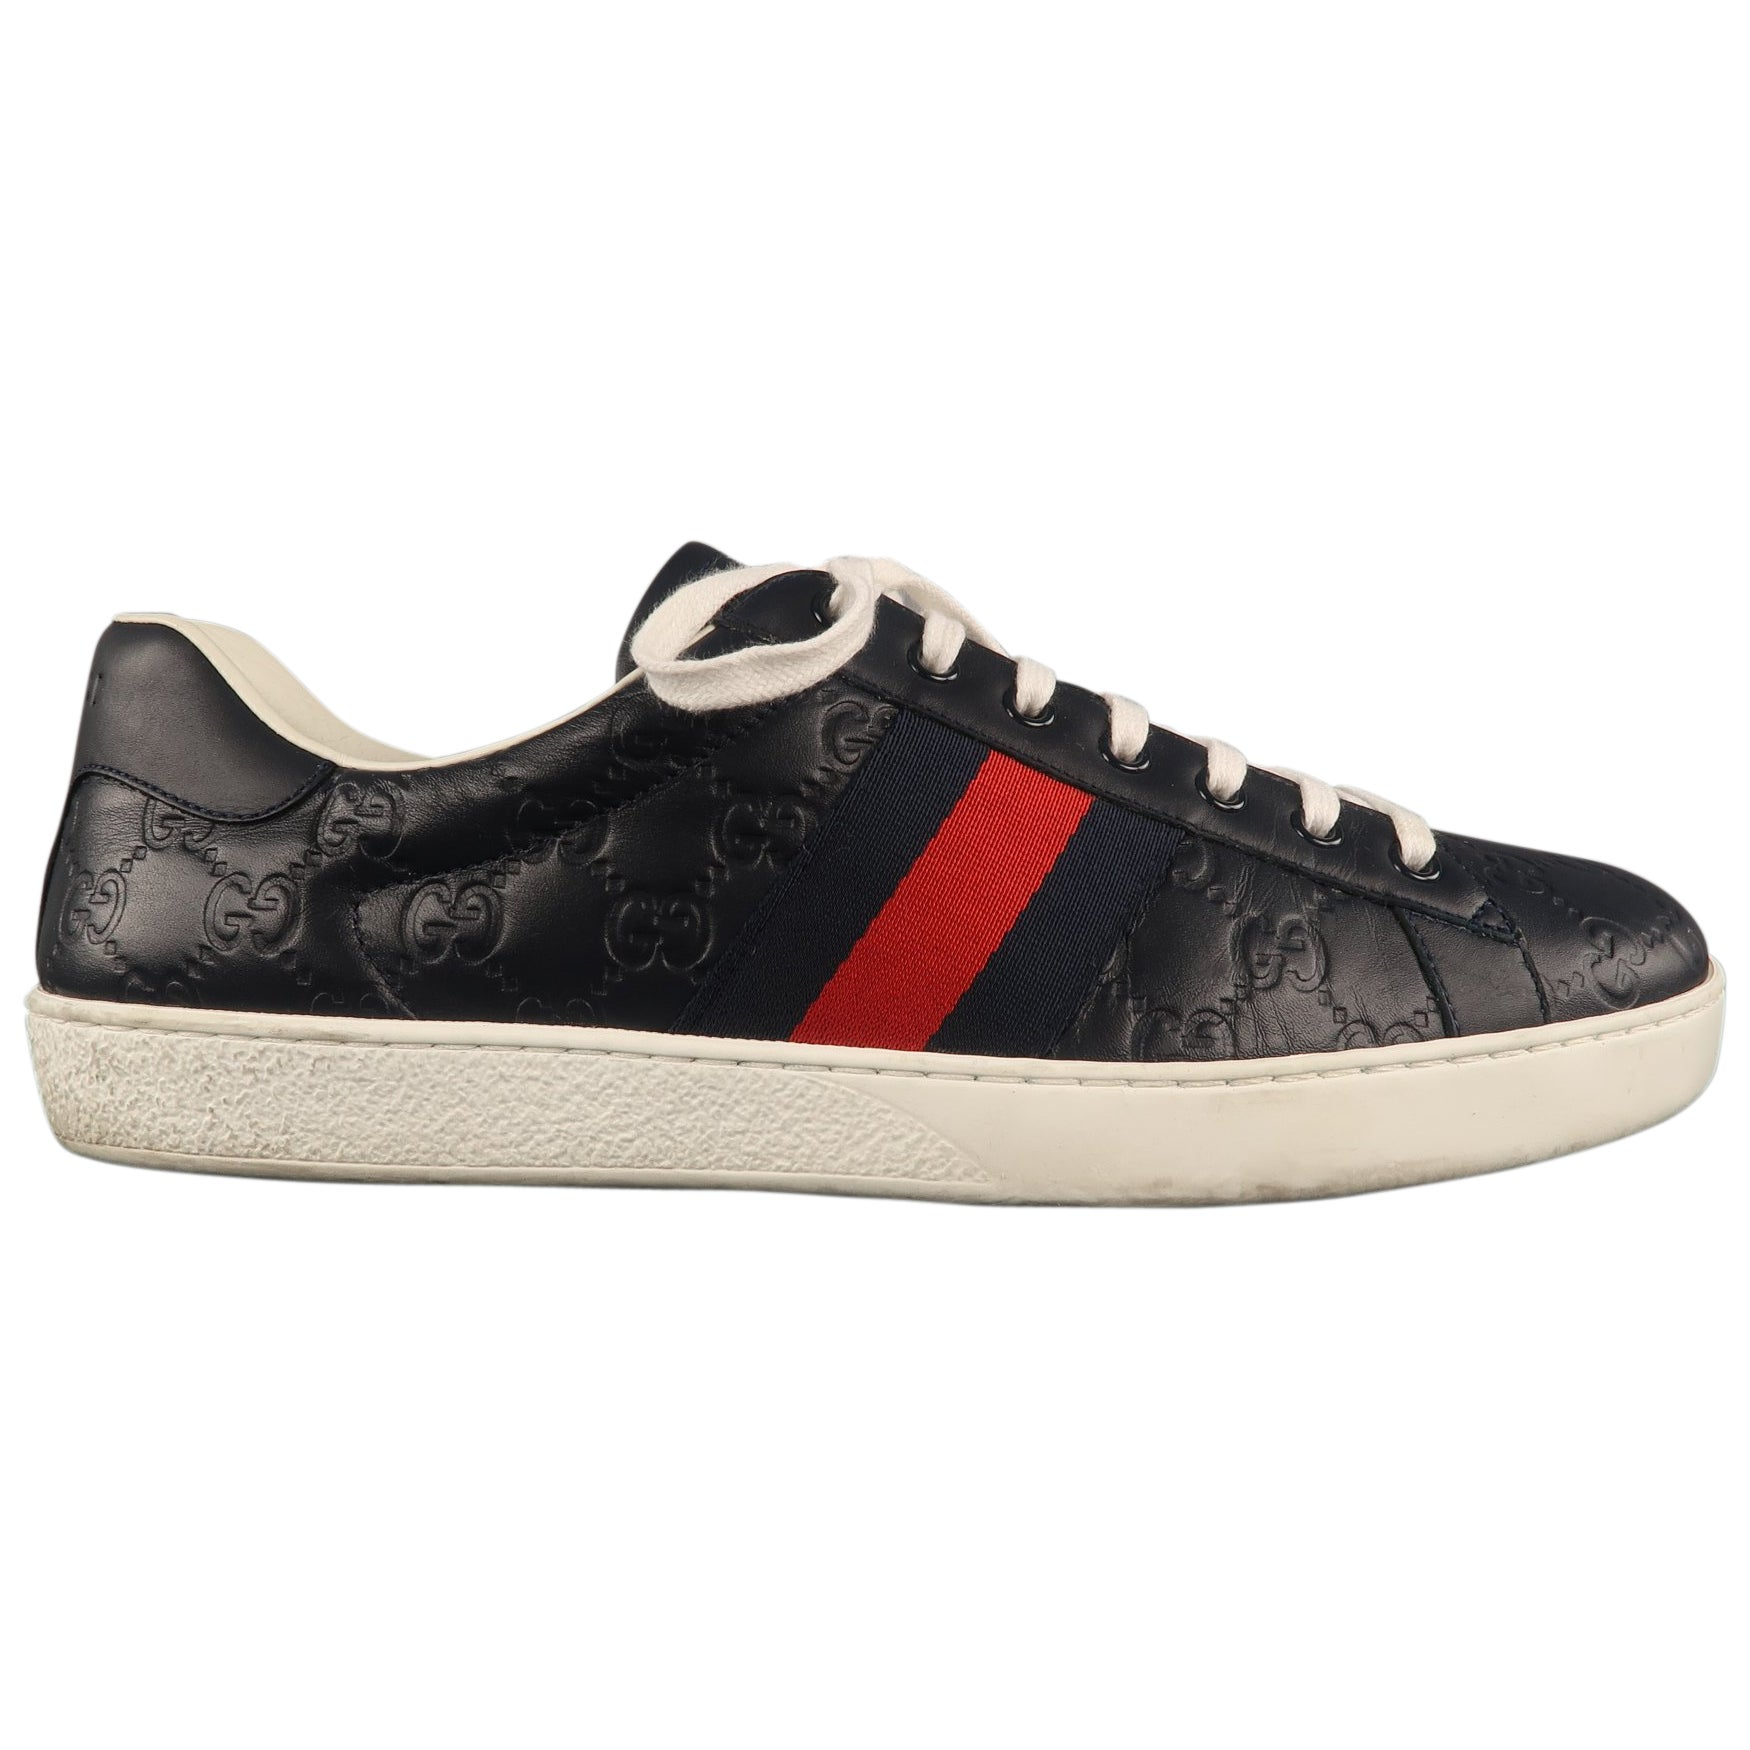 dc34b4ae5 Men's GUCCI ACE Size 11 Navy Monogram Leather Lace Up Sneakers at 1stdibs